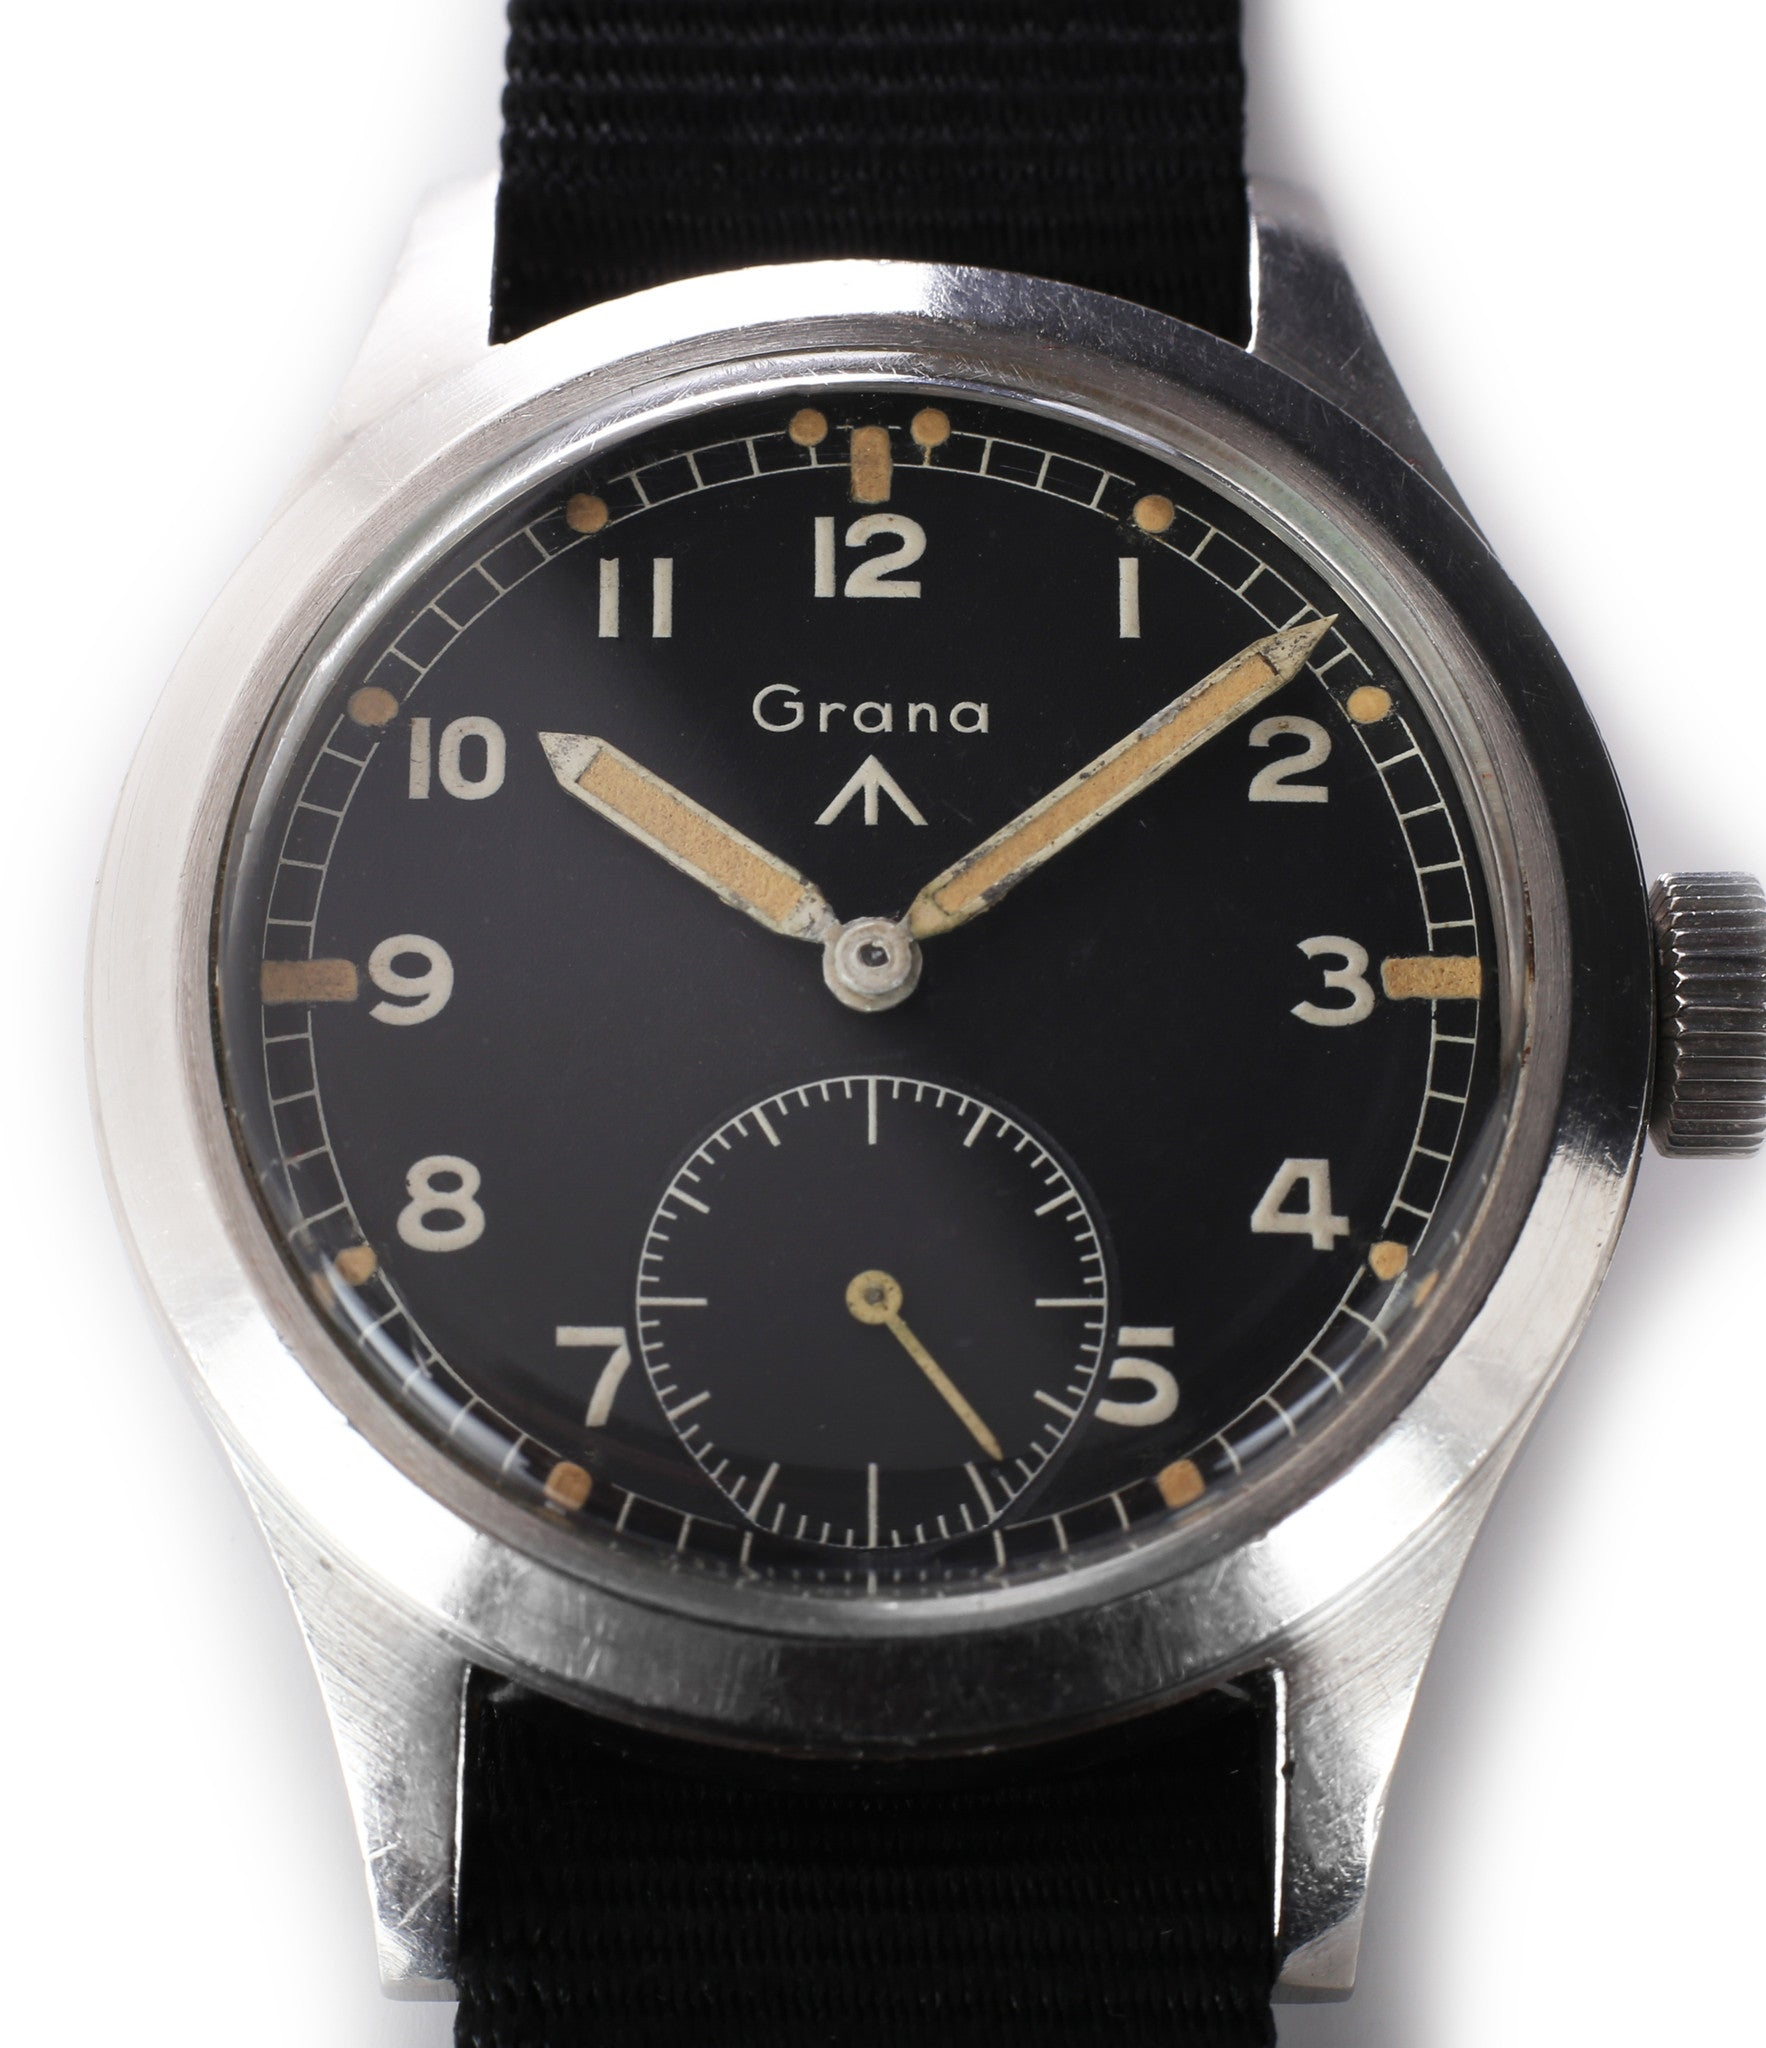 buy Dirty Dozen WWW Grana British military M18565 steel watch with black unrestored dial for sale WATCH XCHANGE London